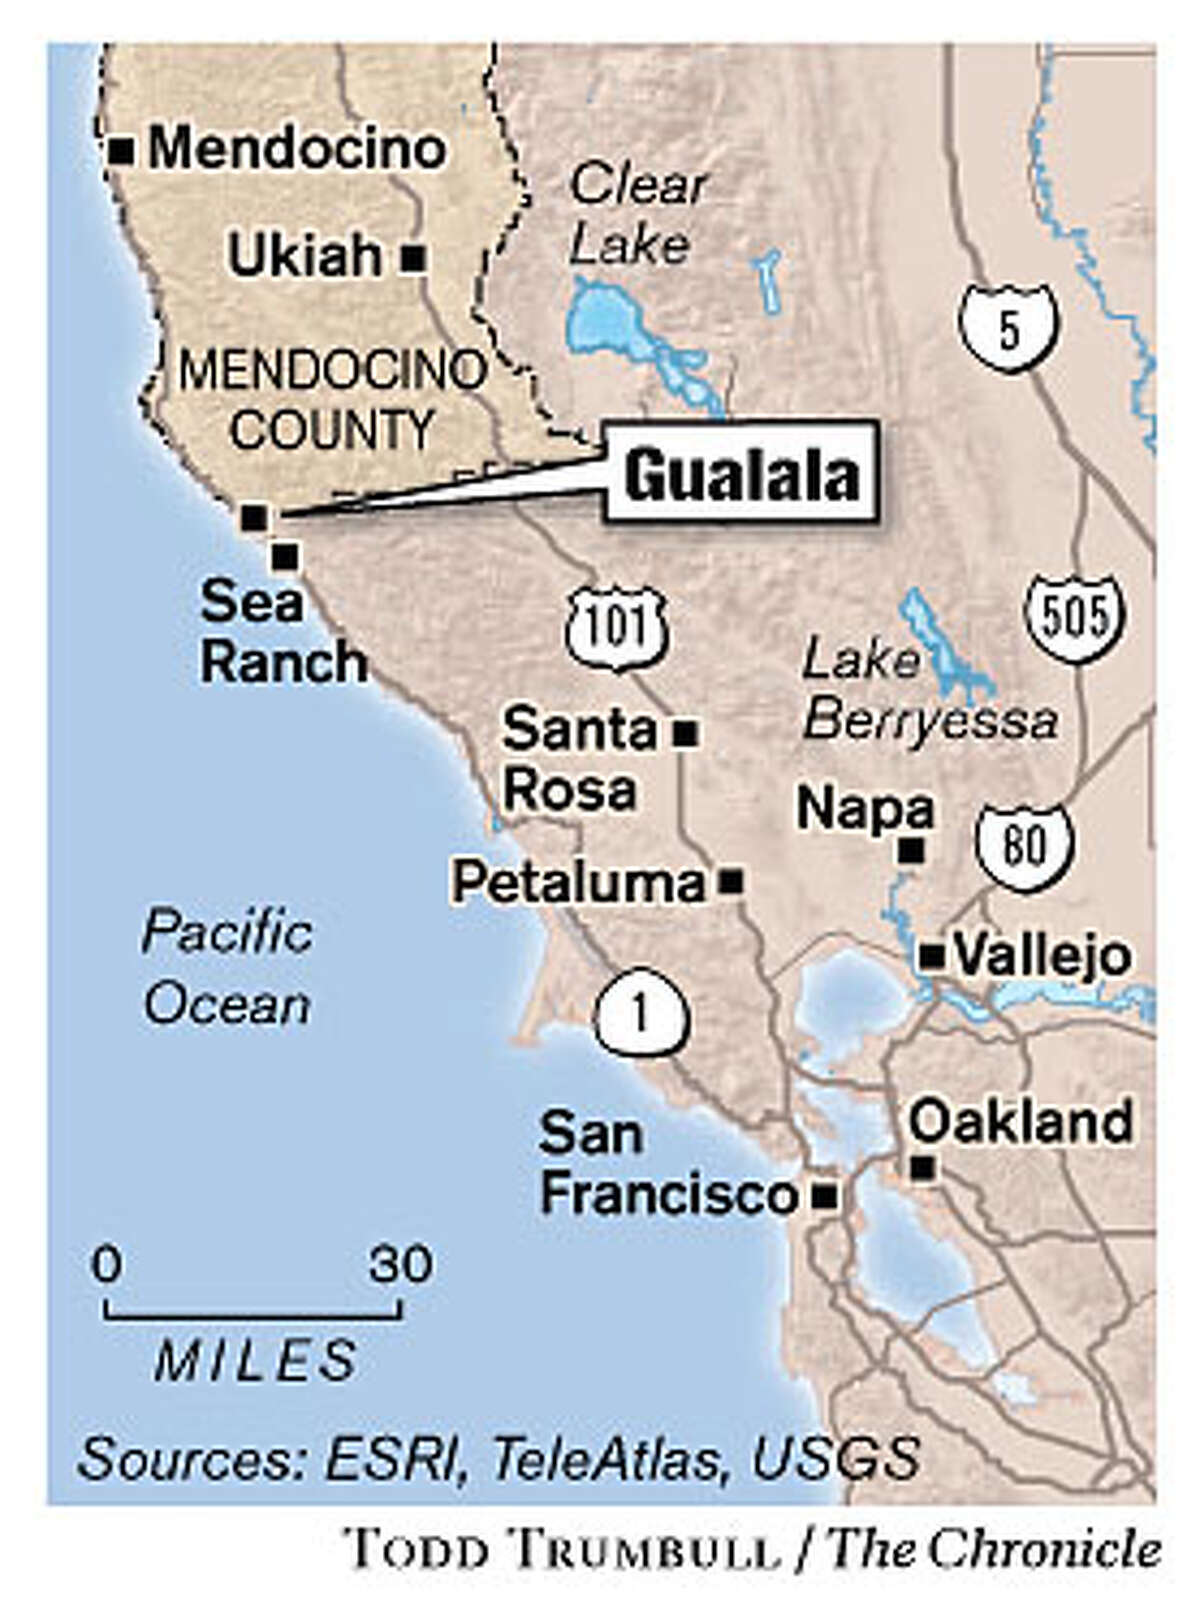 Gualala. Chronicle graphic by Todd Trumbull